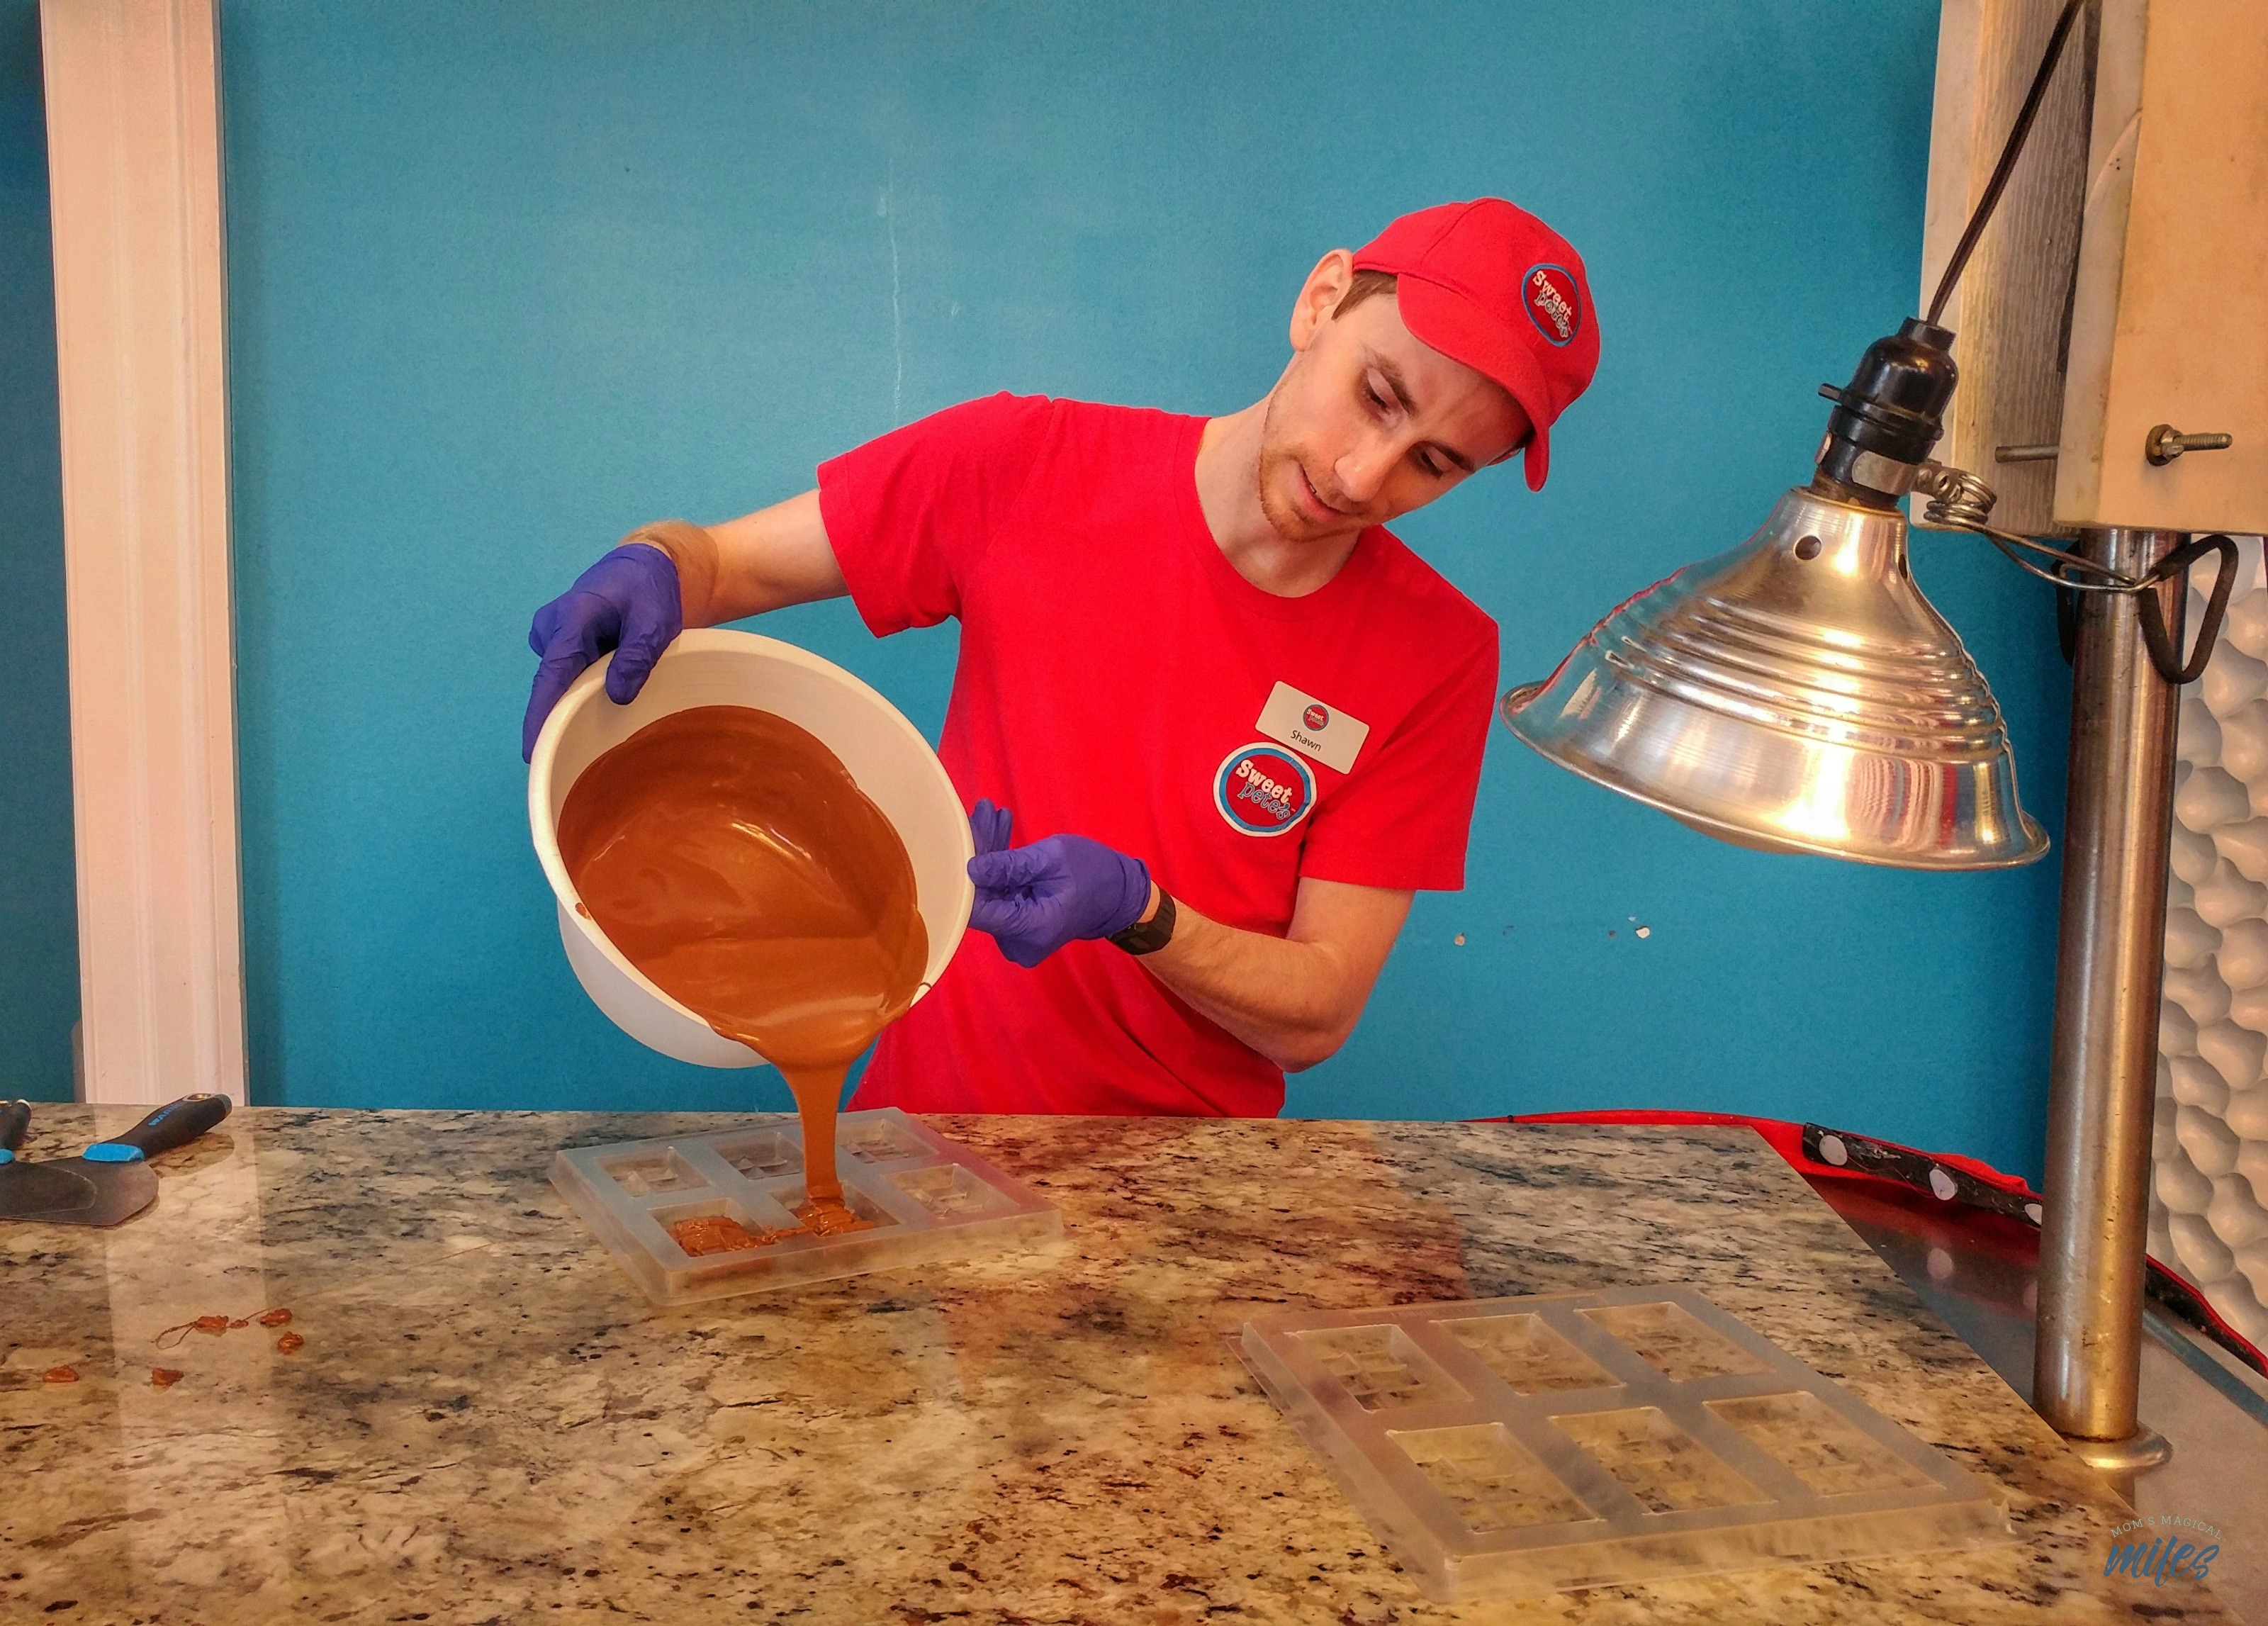 The chocolate making class at Sweet Pete's in Jacksonville, FL is fun for even the youngest child!